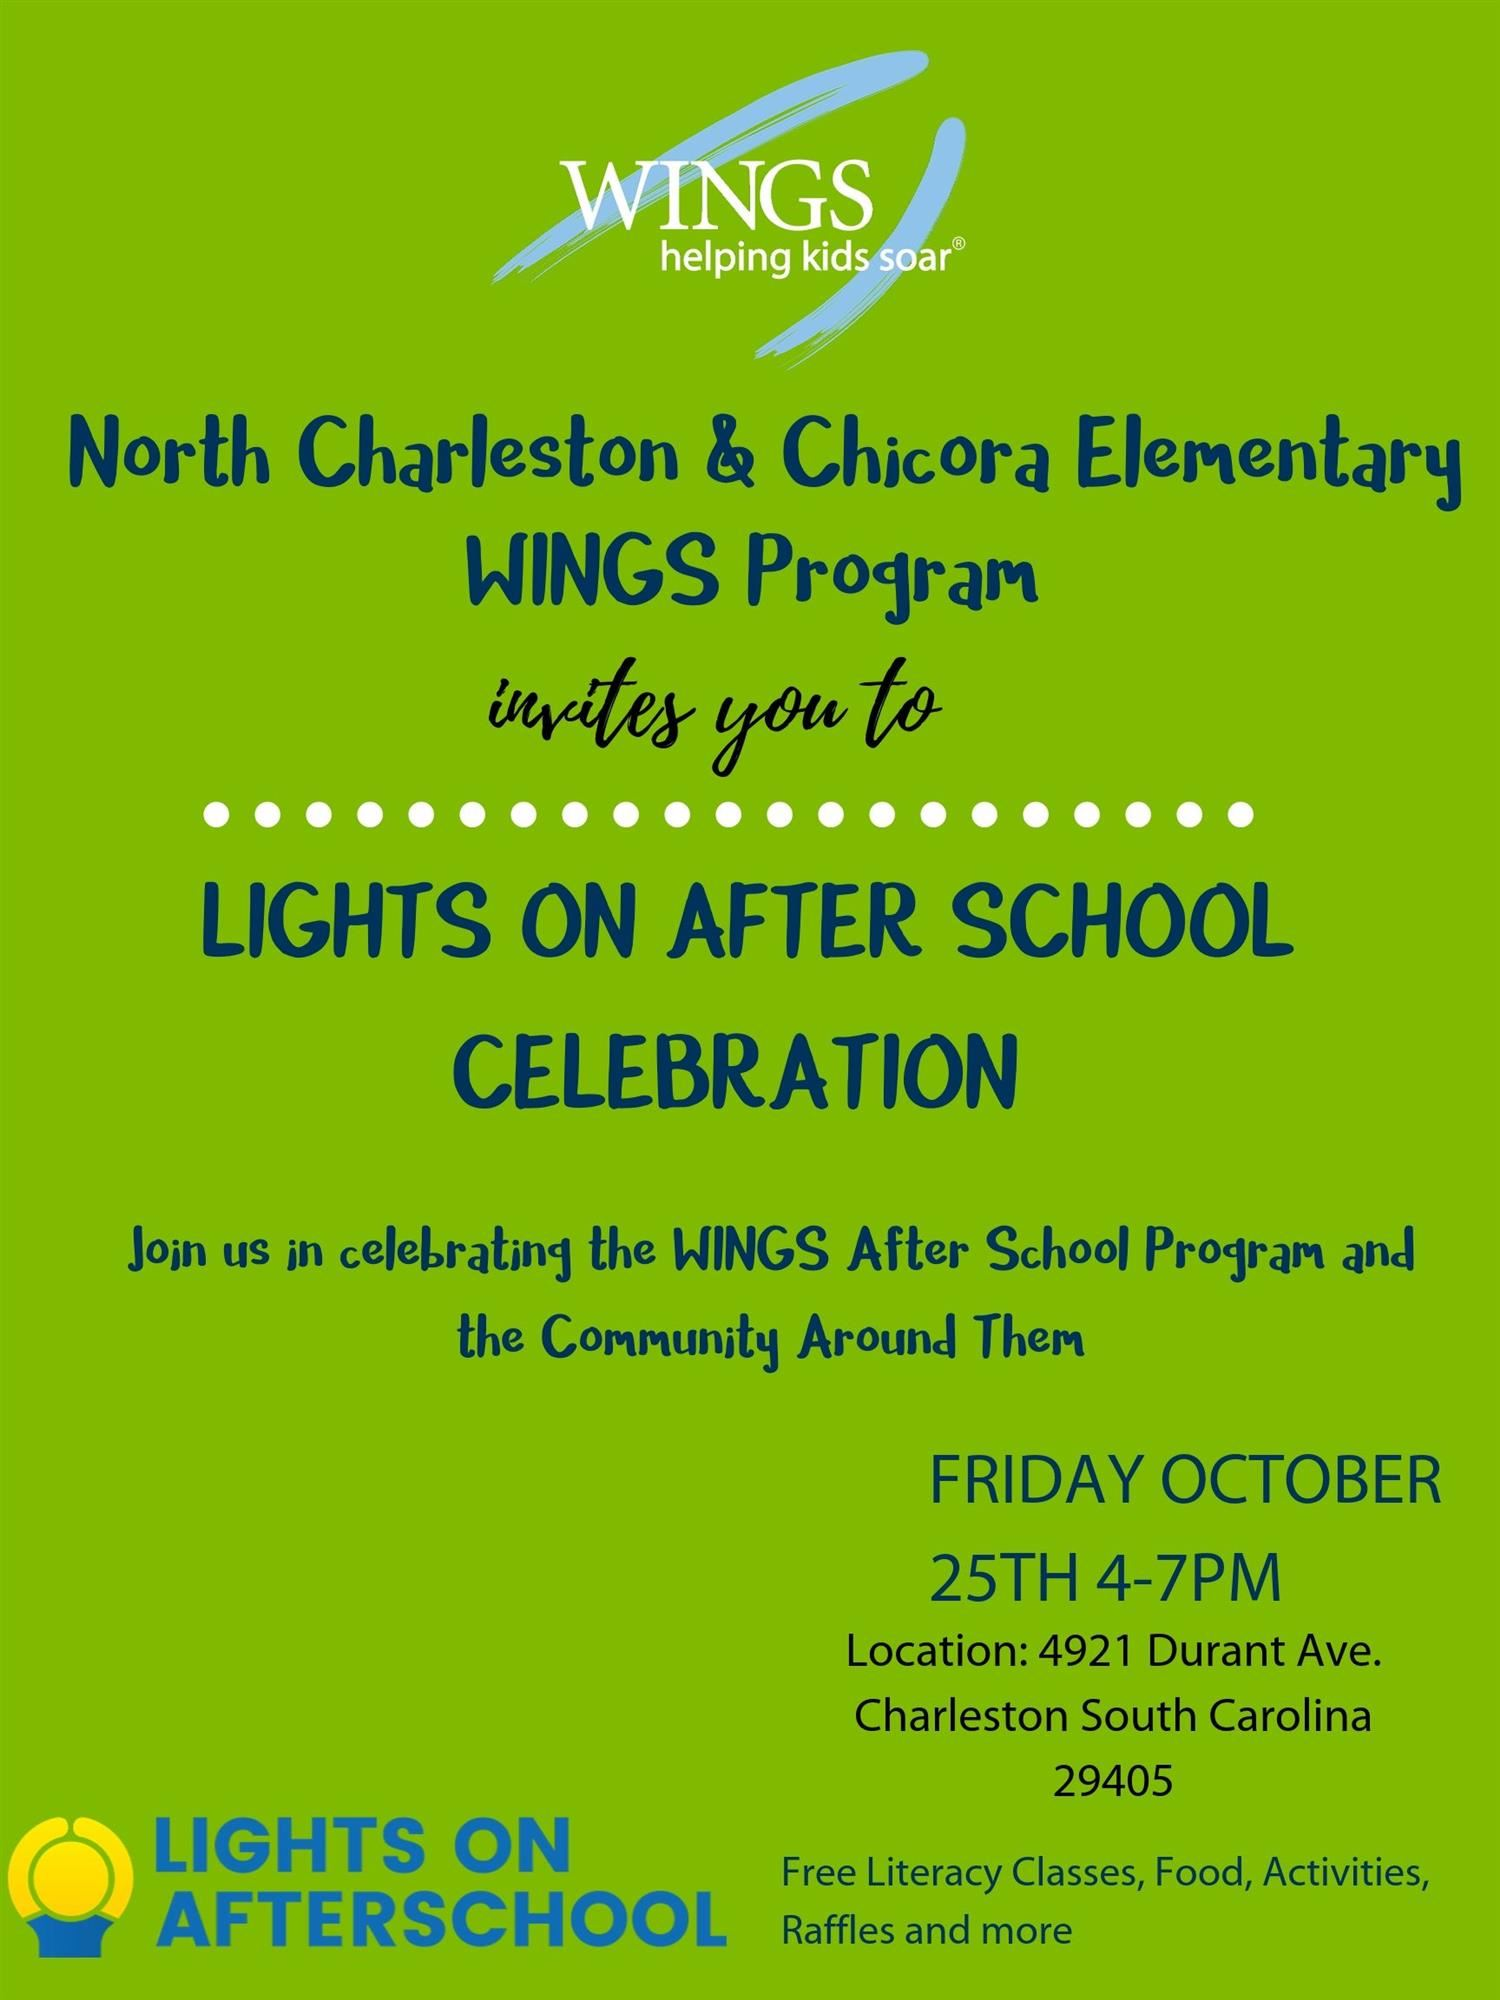 WINGS Lights on After School Celebration